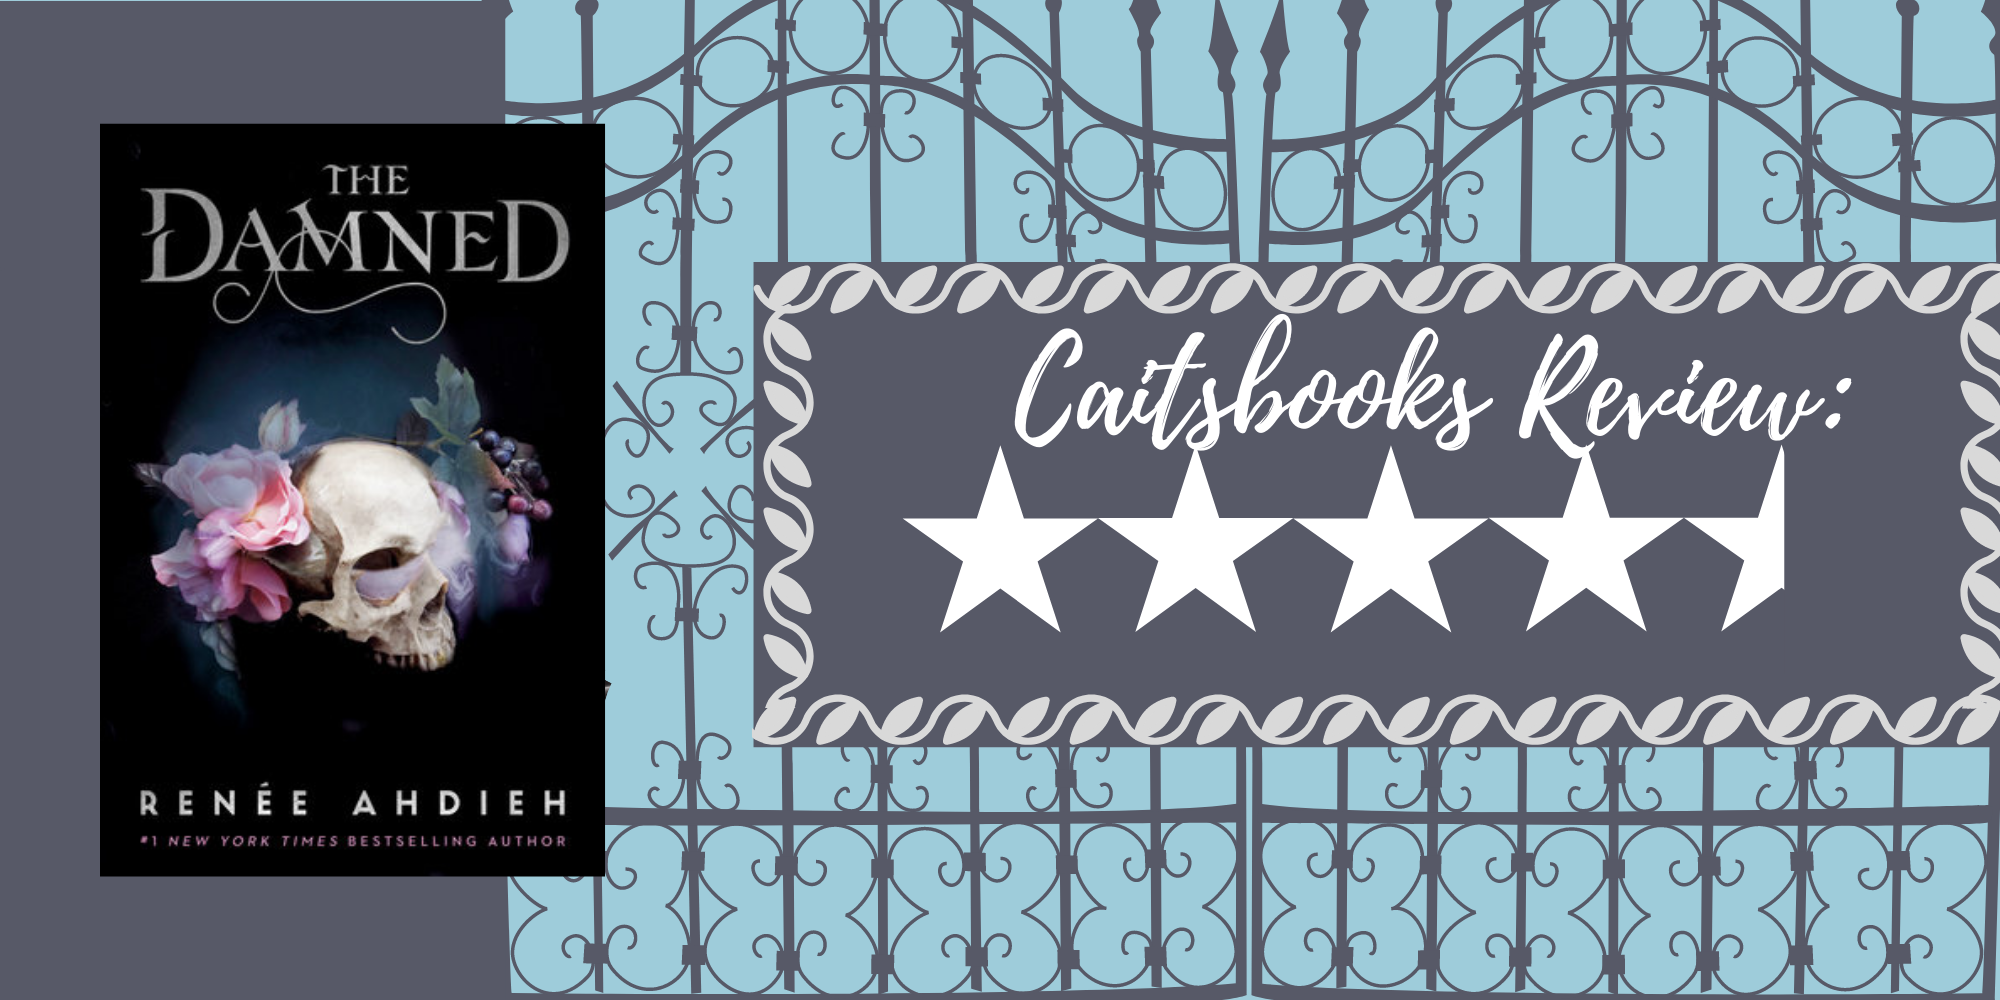 Caitsbooks Reviews The Damned by Renee Ahdieh (4.5 Stars)